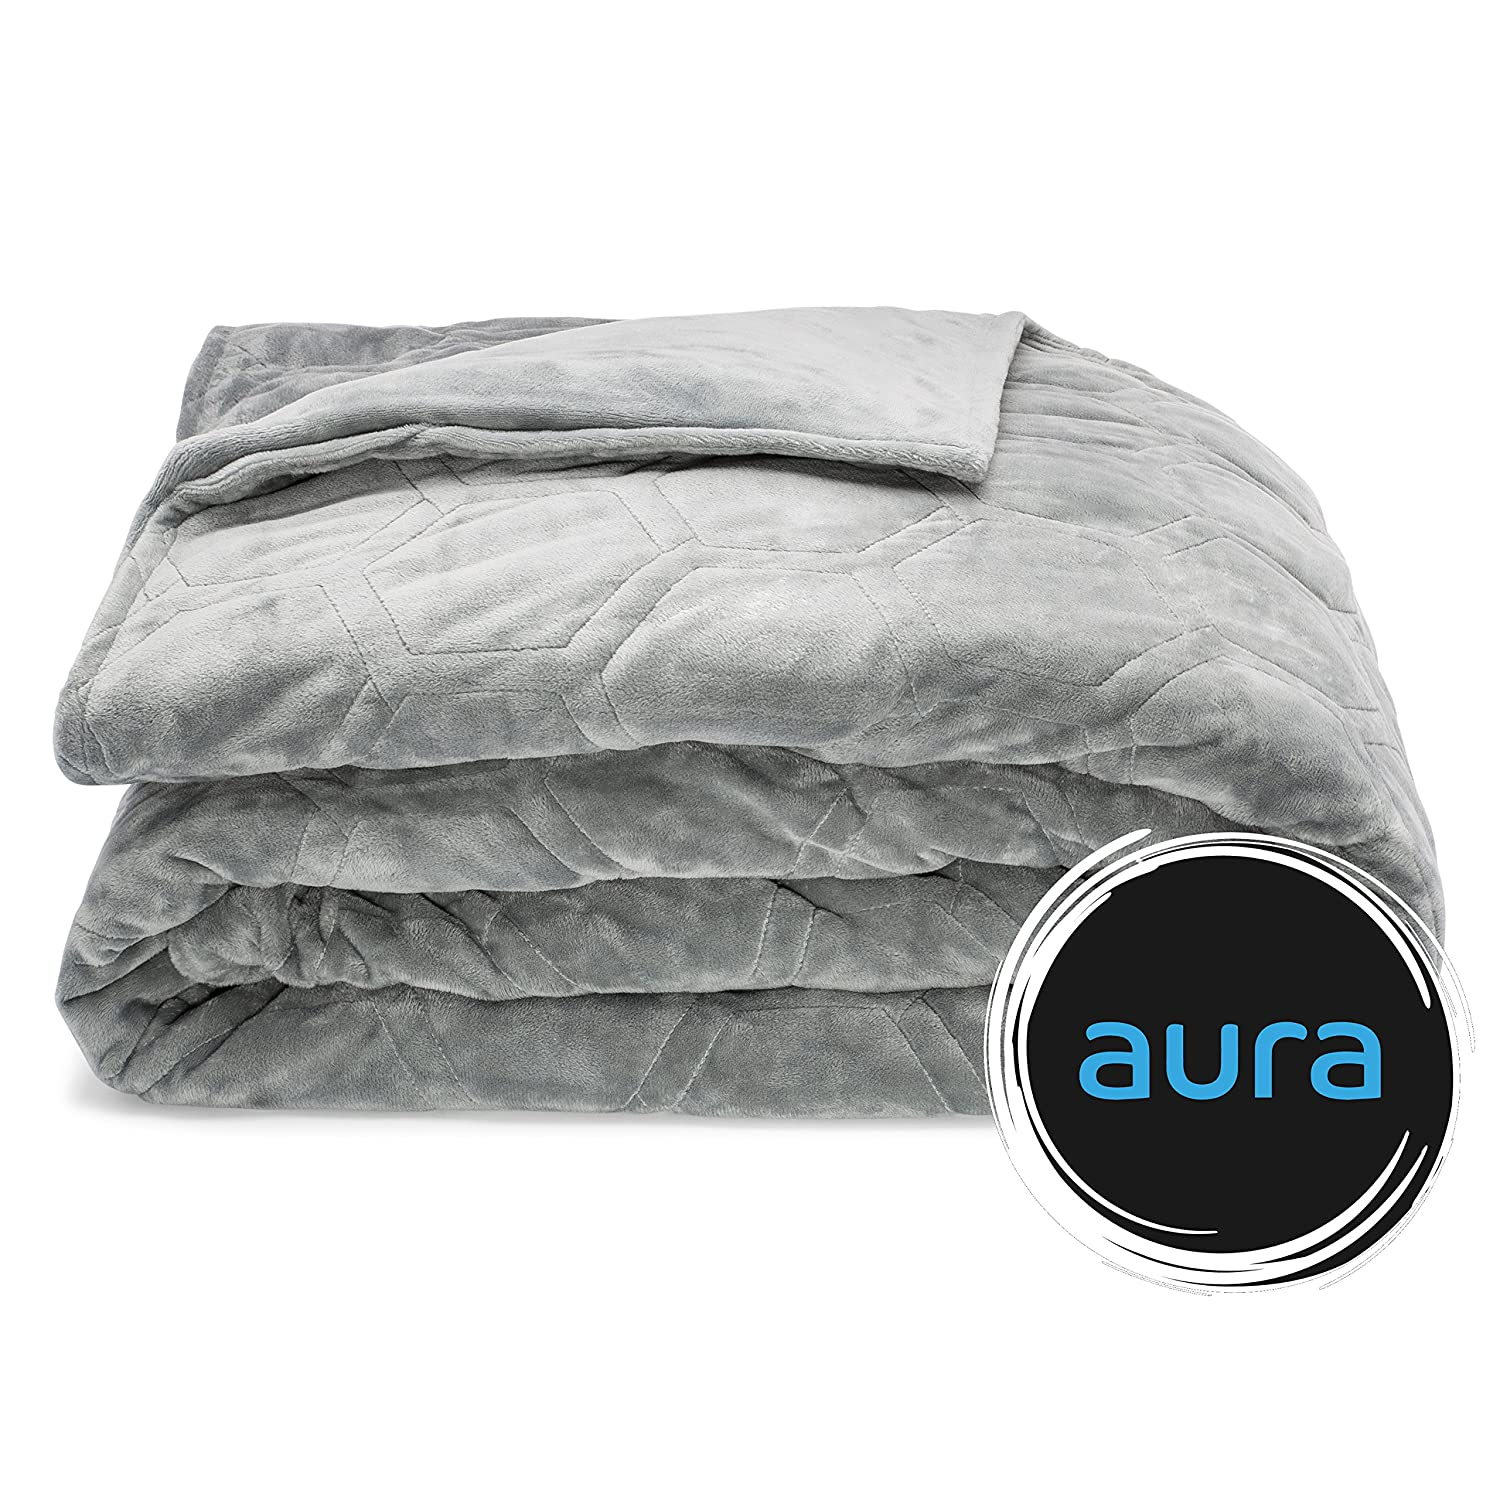 "2-Piece Premium Weighted Gravity Blanket With Removable Cover, AuraGrid Technology, Gray, 60""x80"", 15 lbs 60""x80"" Aura Blankets"